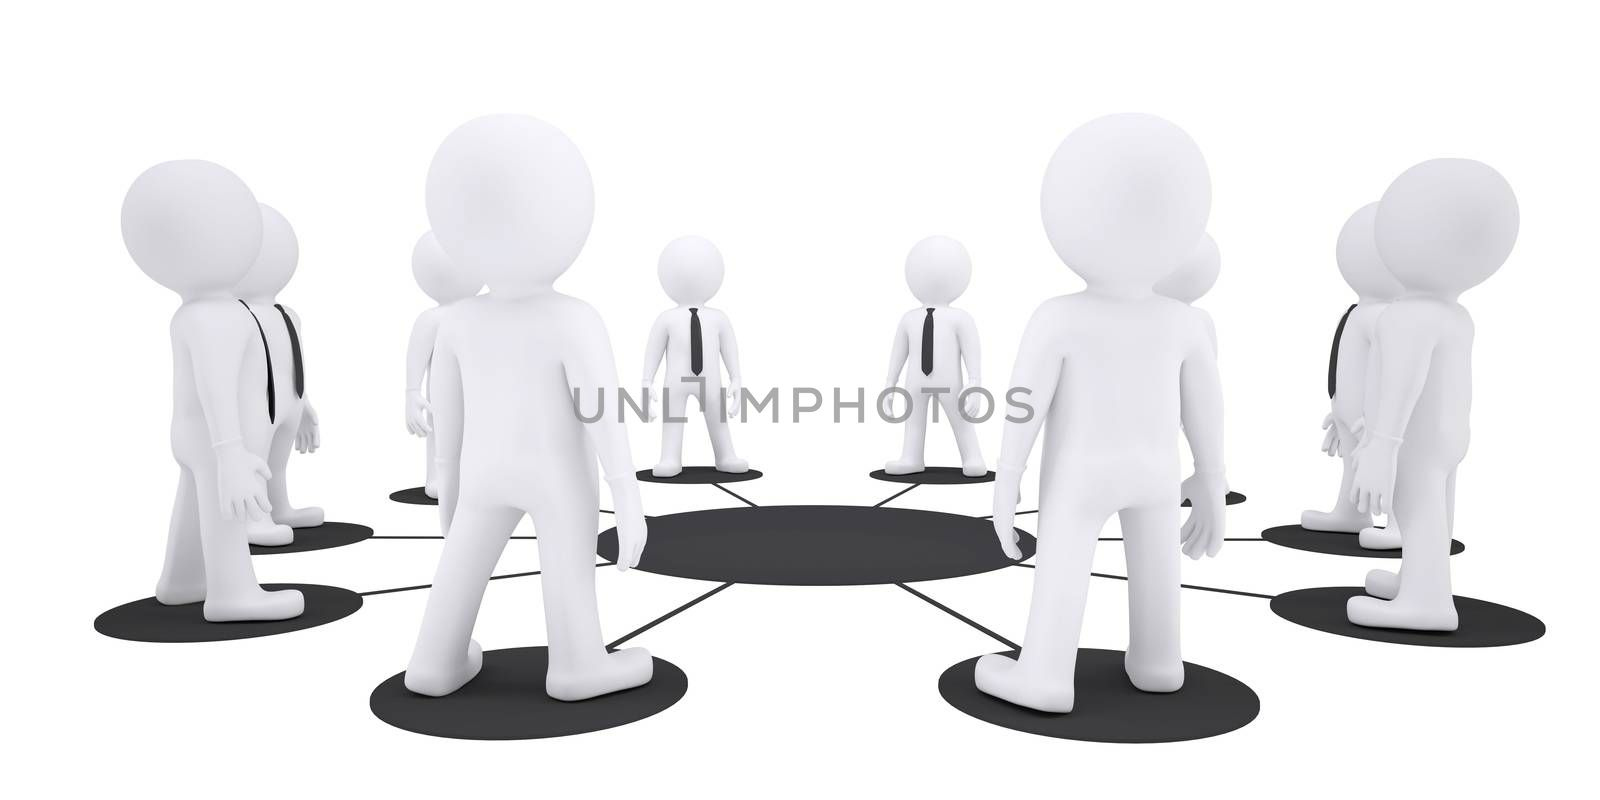 Puppet people around one puppet on isolated white background, side view